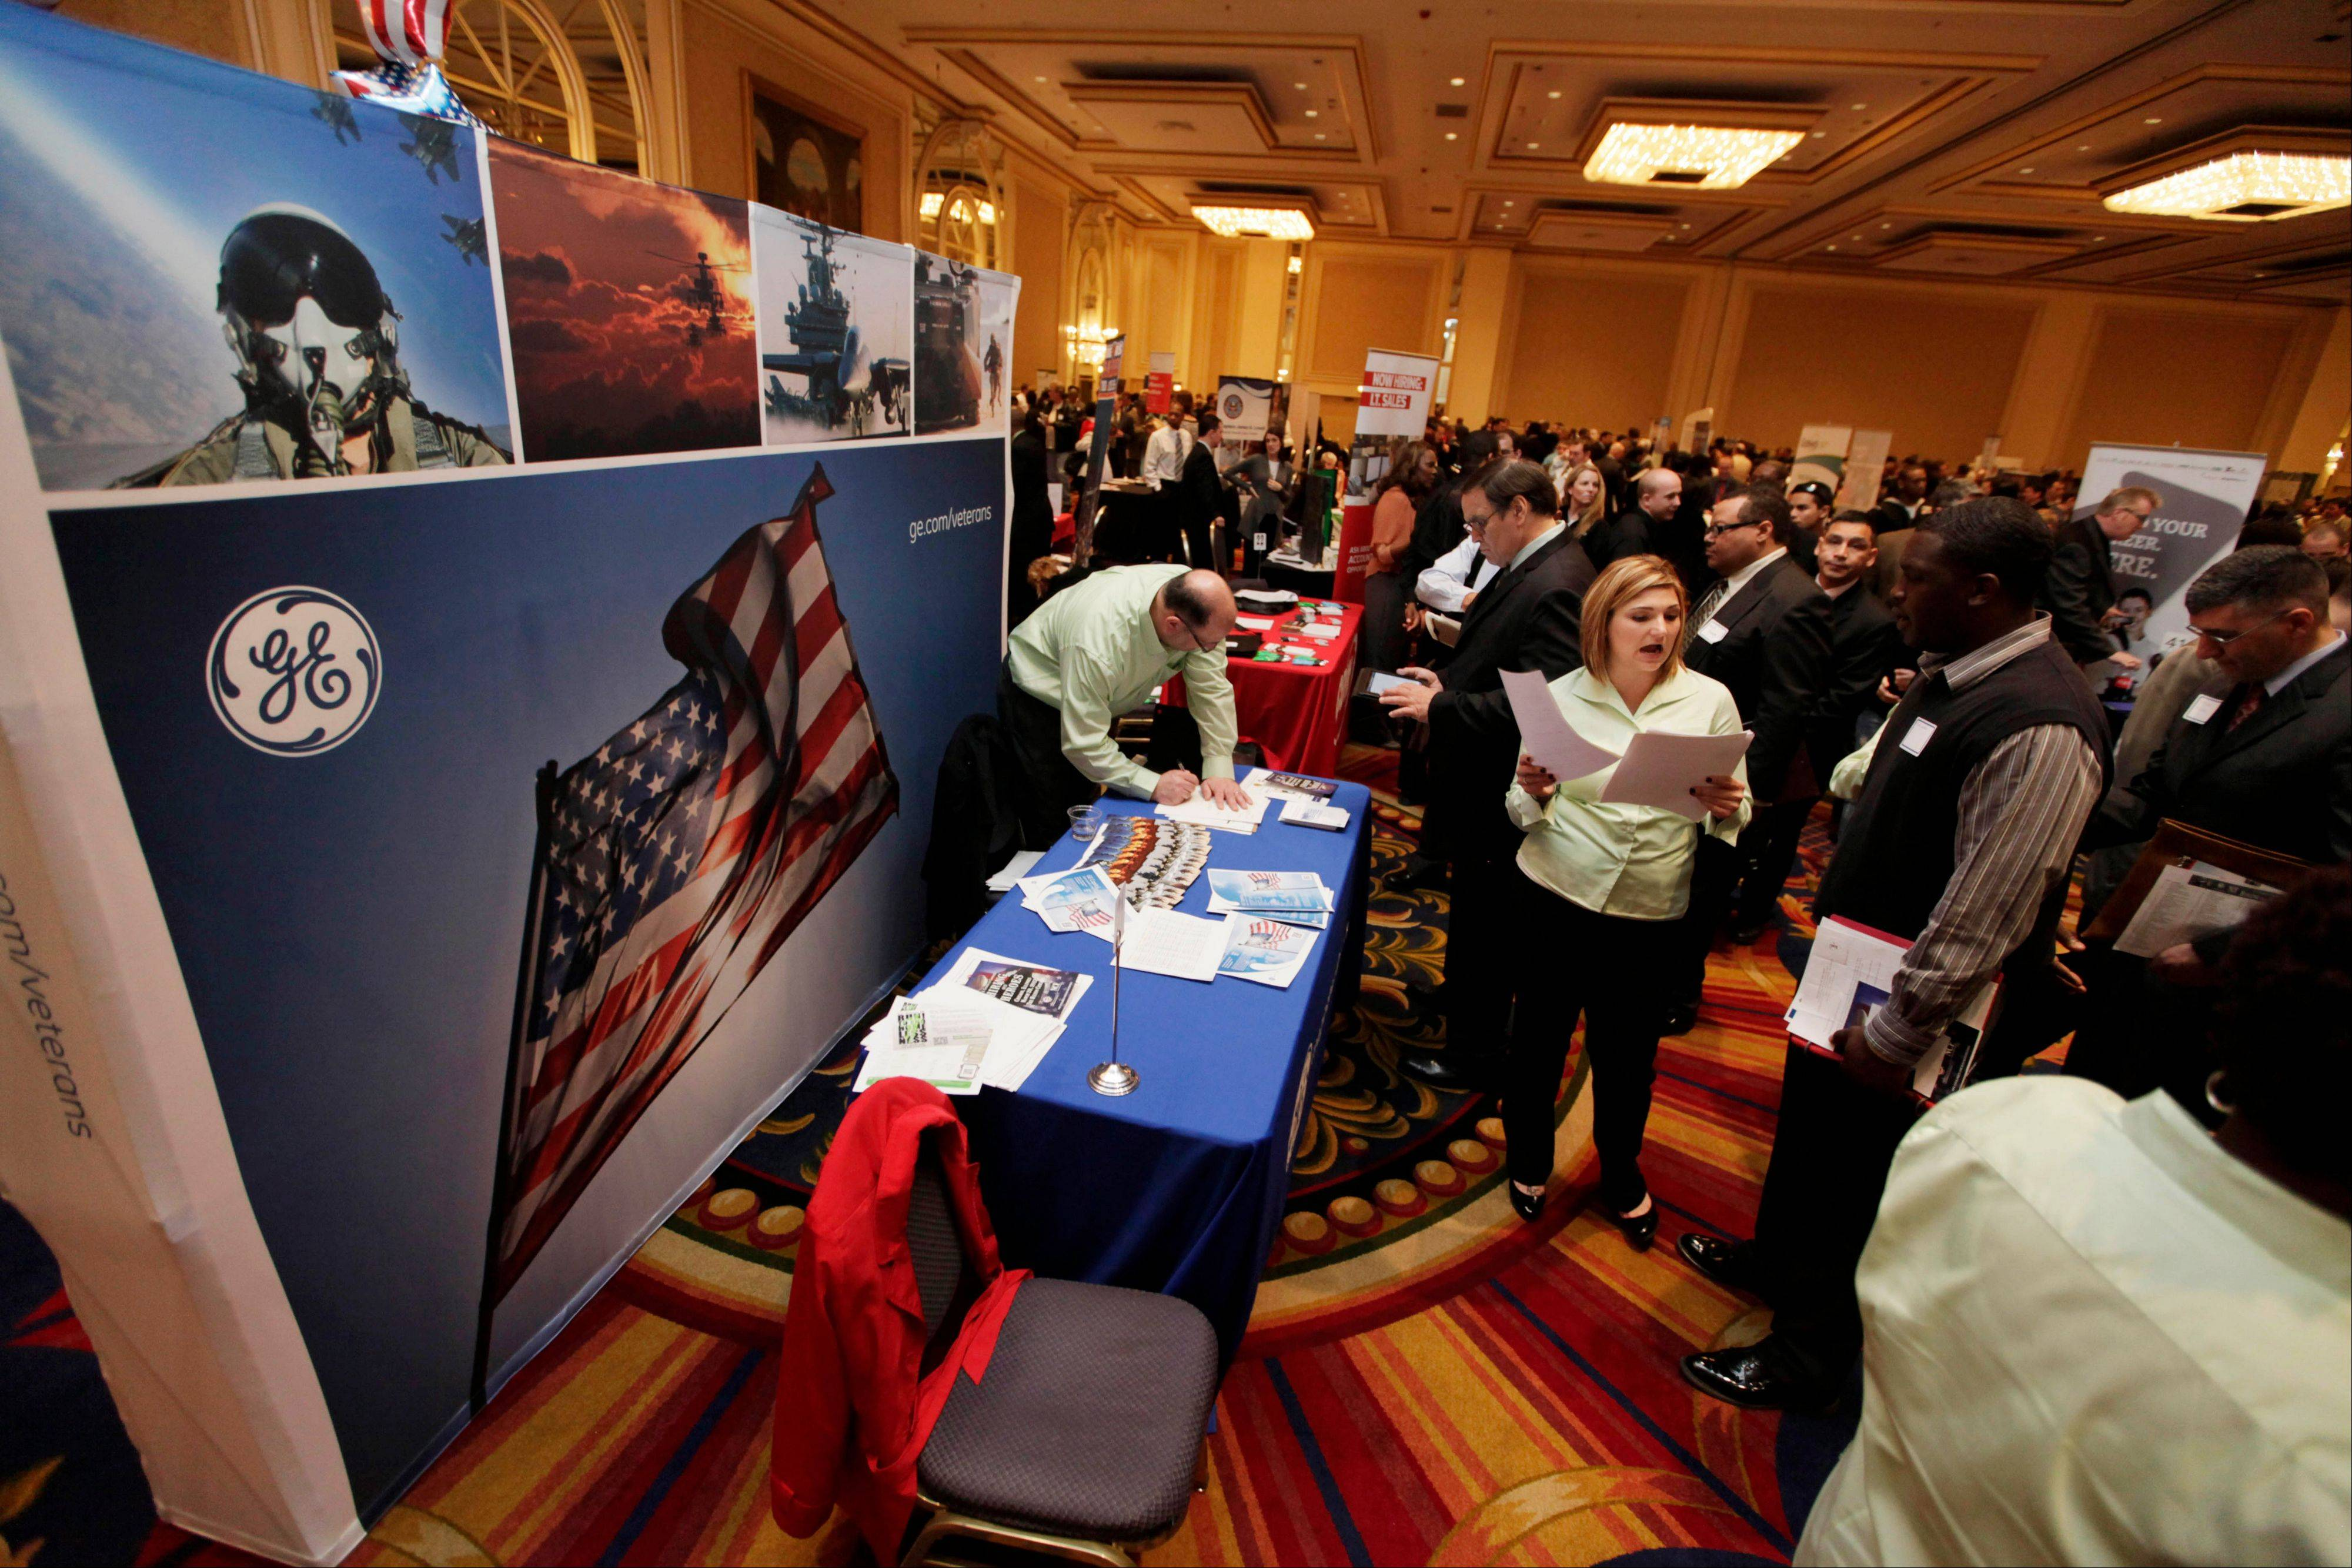 About 1,500 people and about 135 employers attended the Hiring Our Heroes job fair in Chicago, one of a series of events being sponsored by the U.S. Chamber of Commerce around the country.